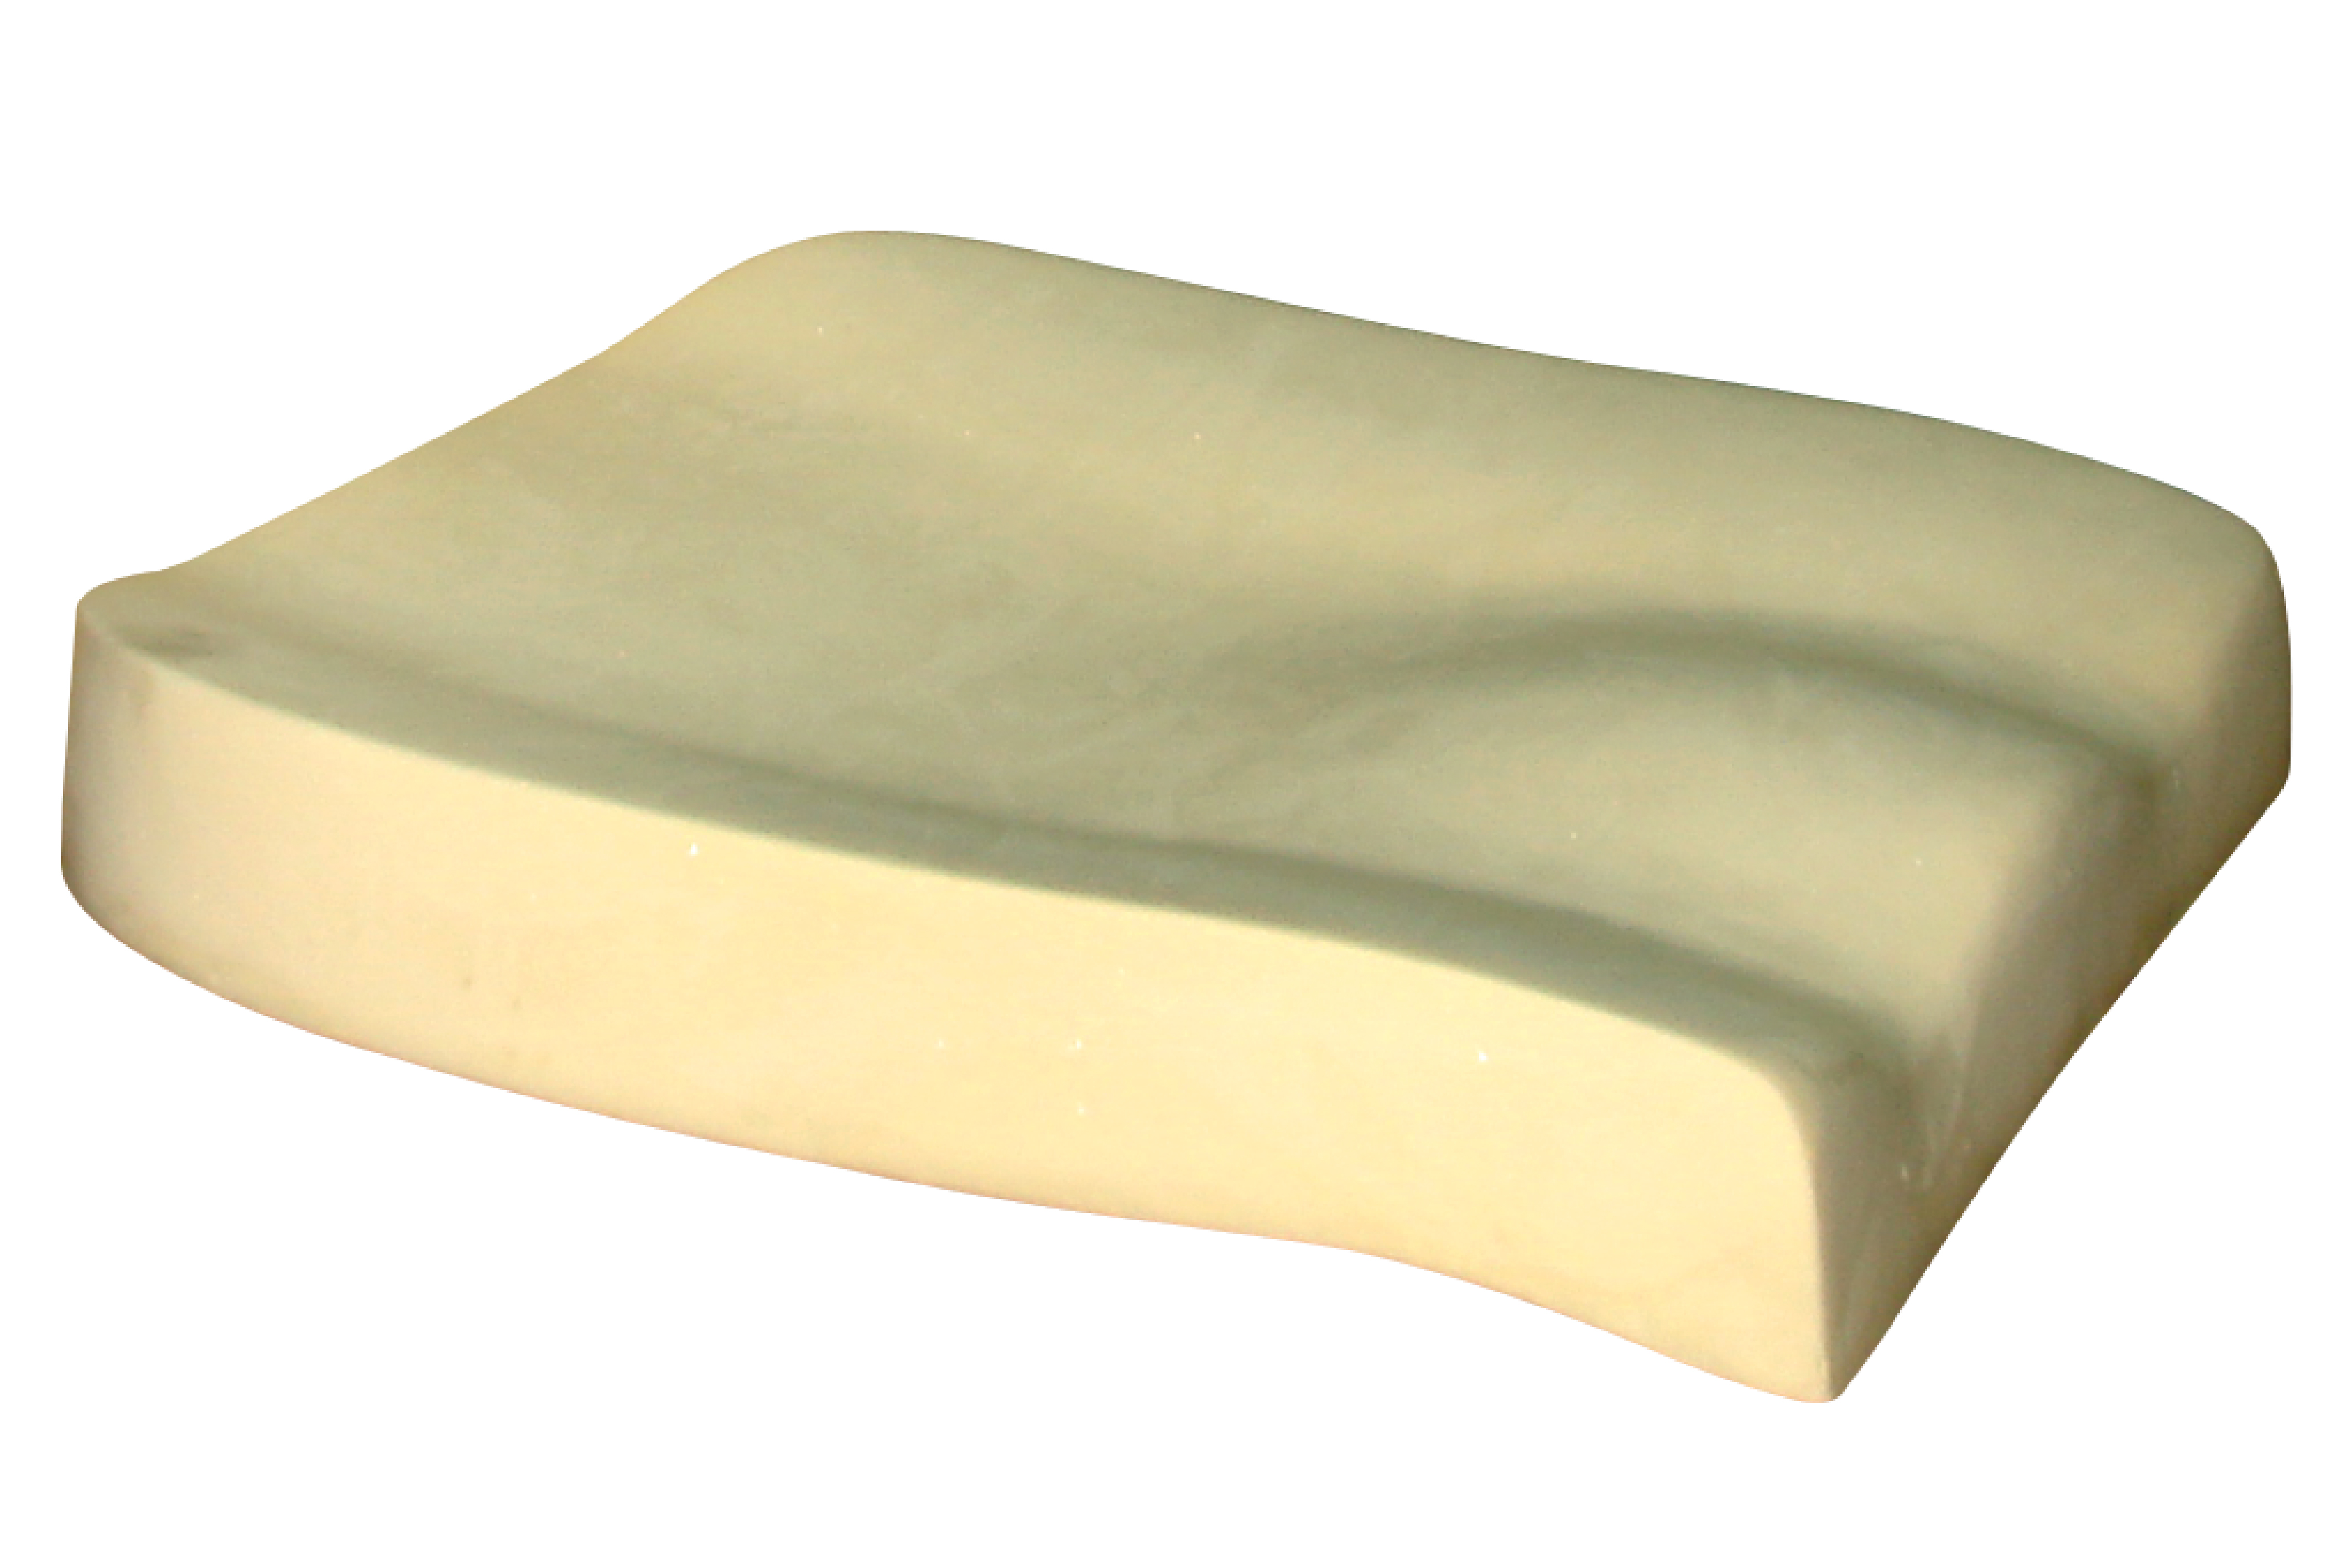 High Density Upholstery Foam | High Density Foam Rubber Sheet | Upholstery Foam Blocks